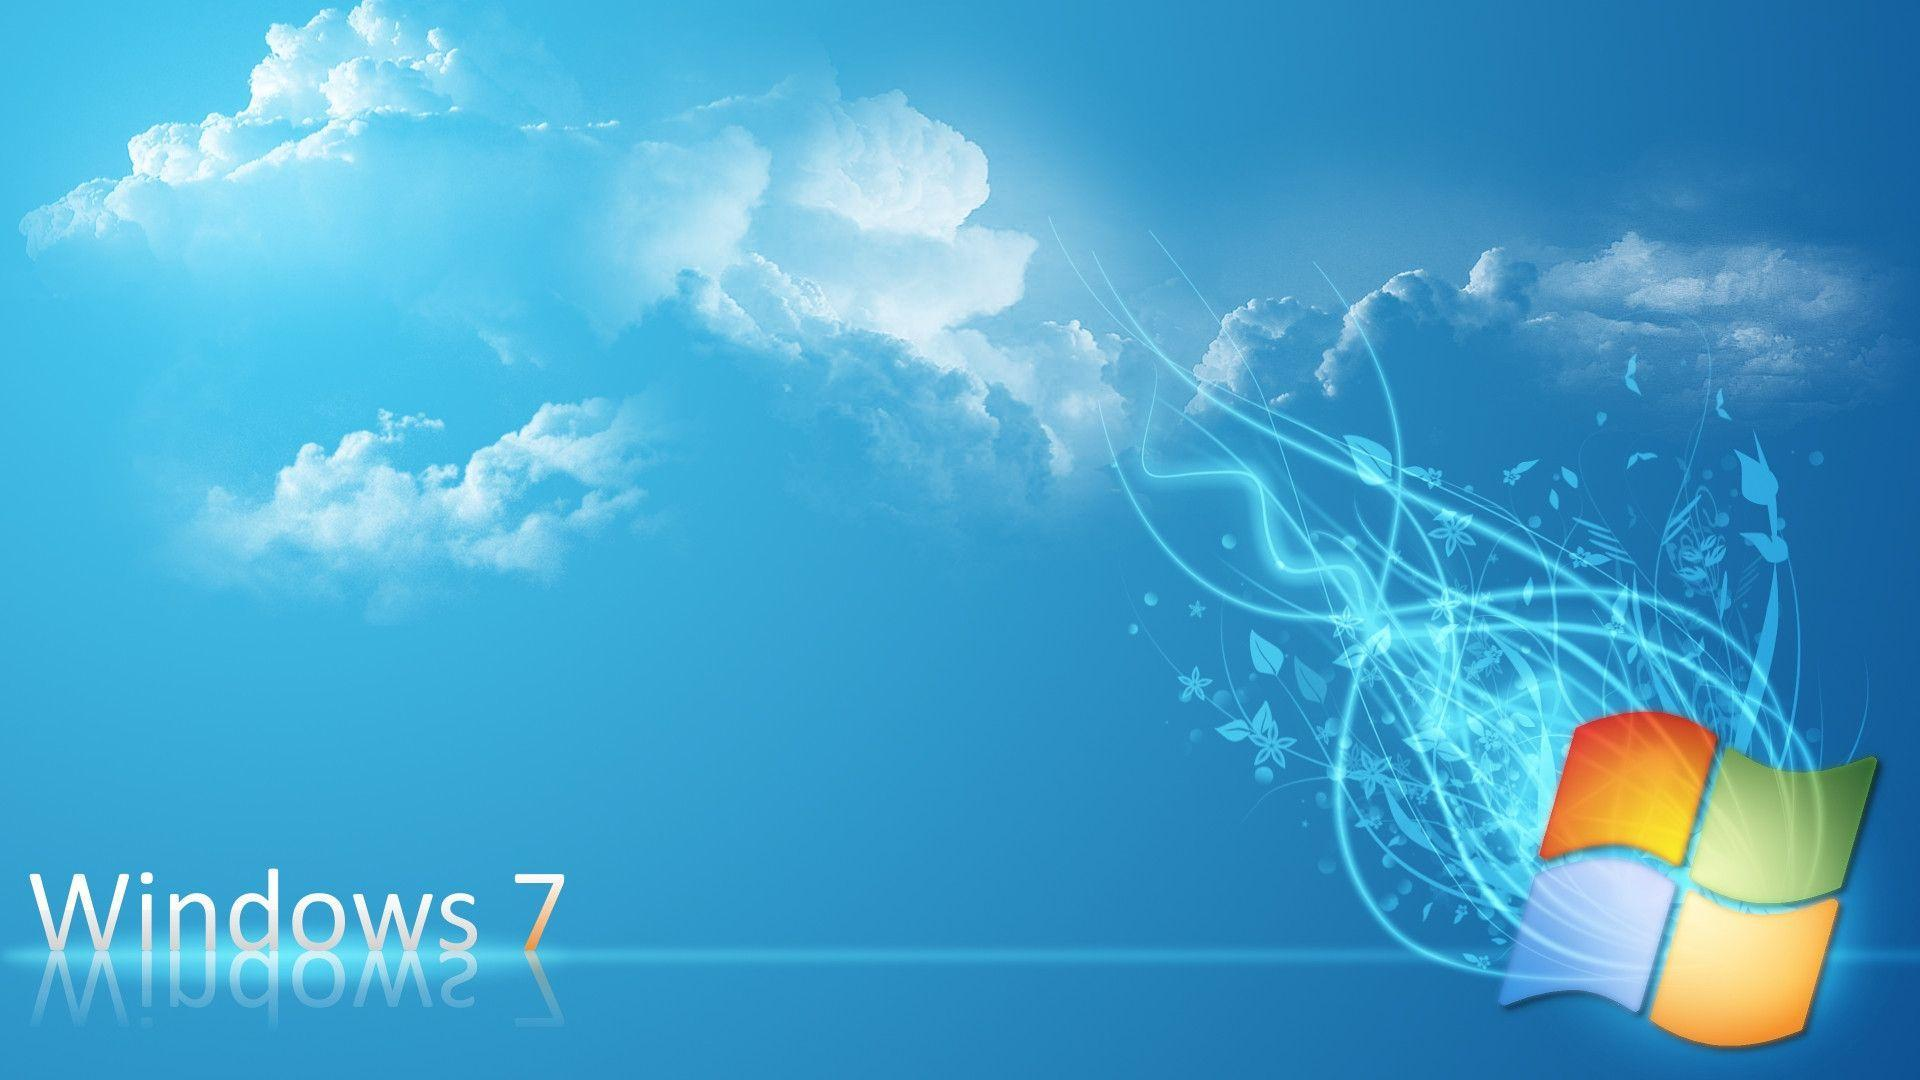 Hd wallpaper windows 7 - Windows 7 Wallpapers Hd Download Blue Sky Imag 5560 Wallpaper